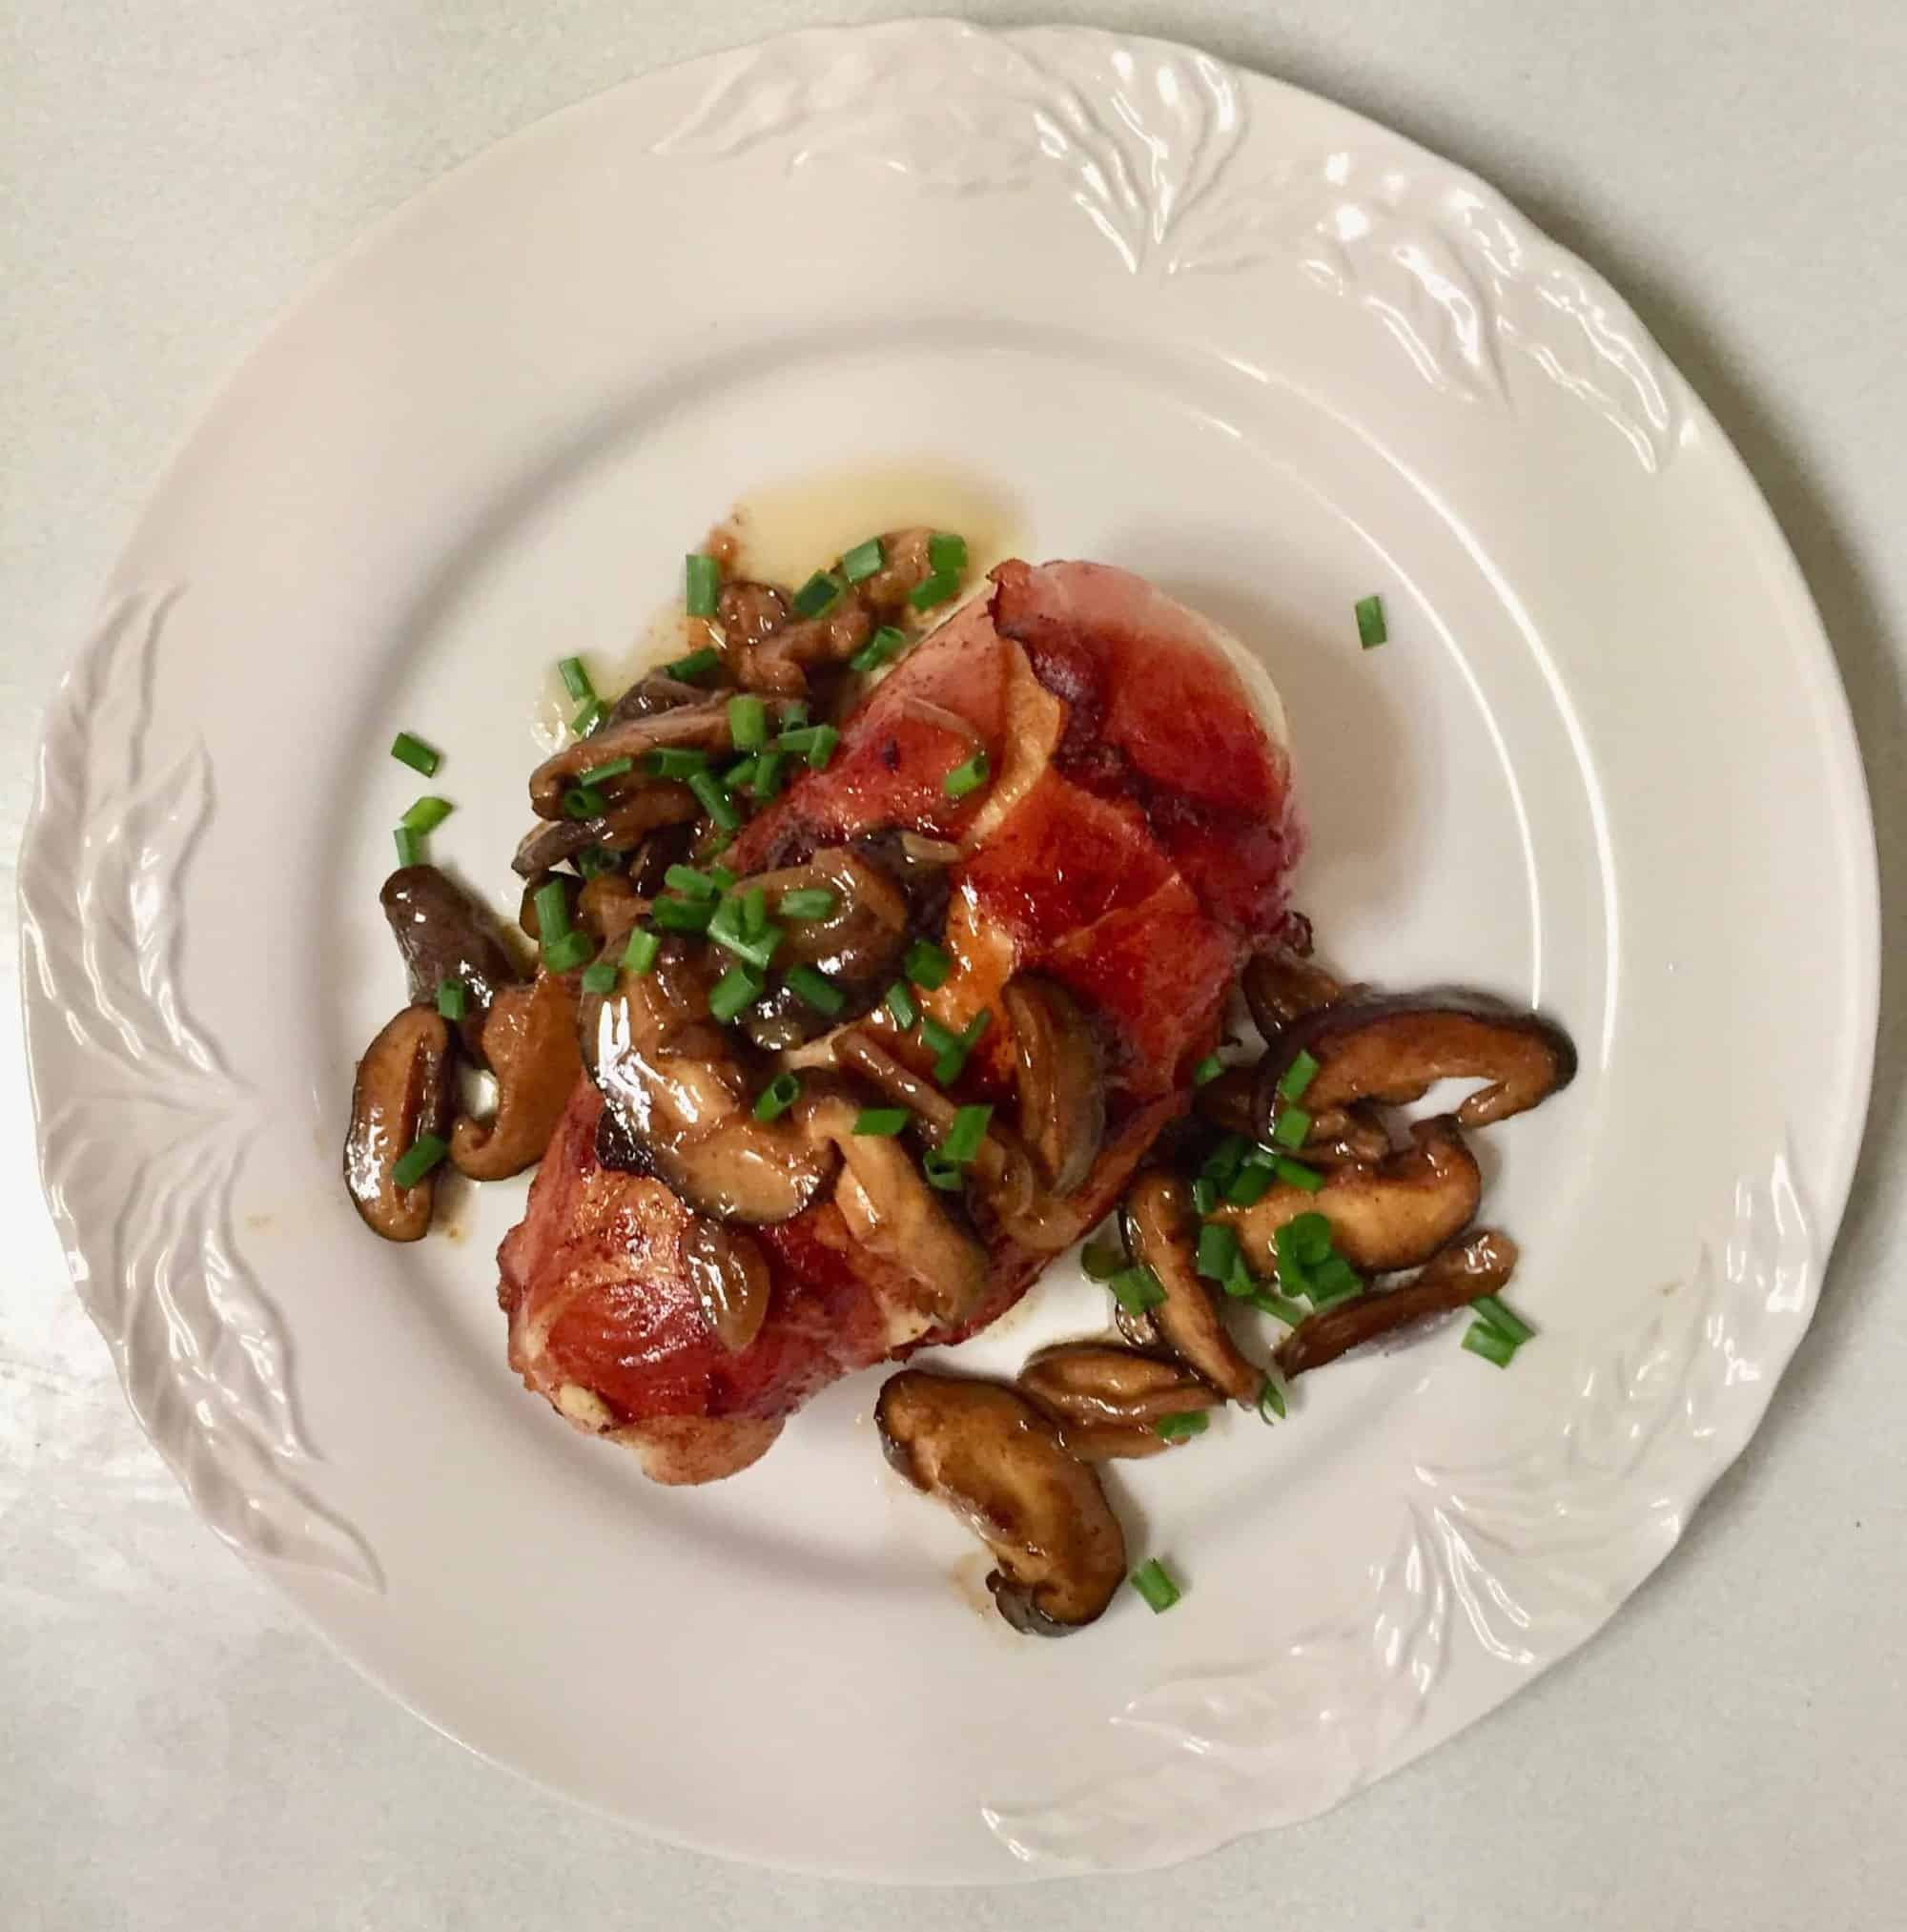 Prosciutto-wrapped Chicken Breasts stuffed with Black Truffle Goat Cheese, with Shiitake Mushrooms in a Marsala Sauce. Whew!